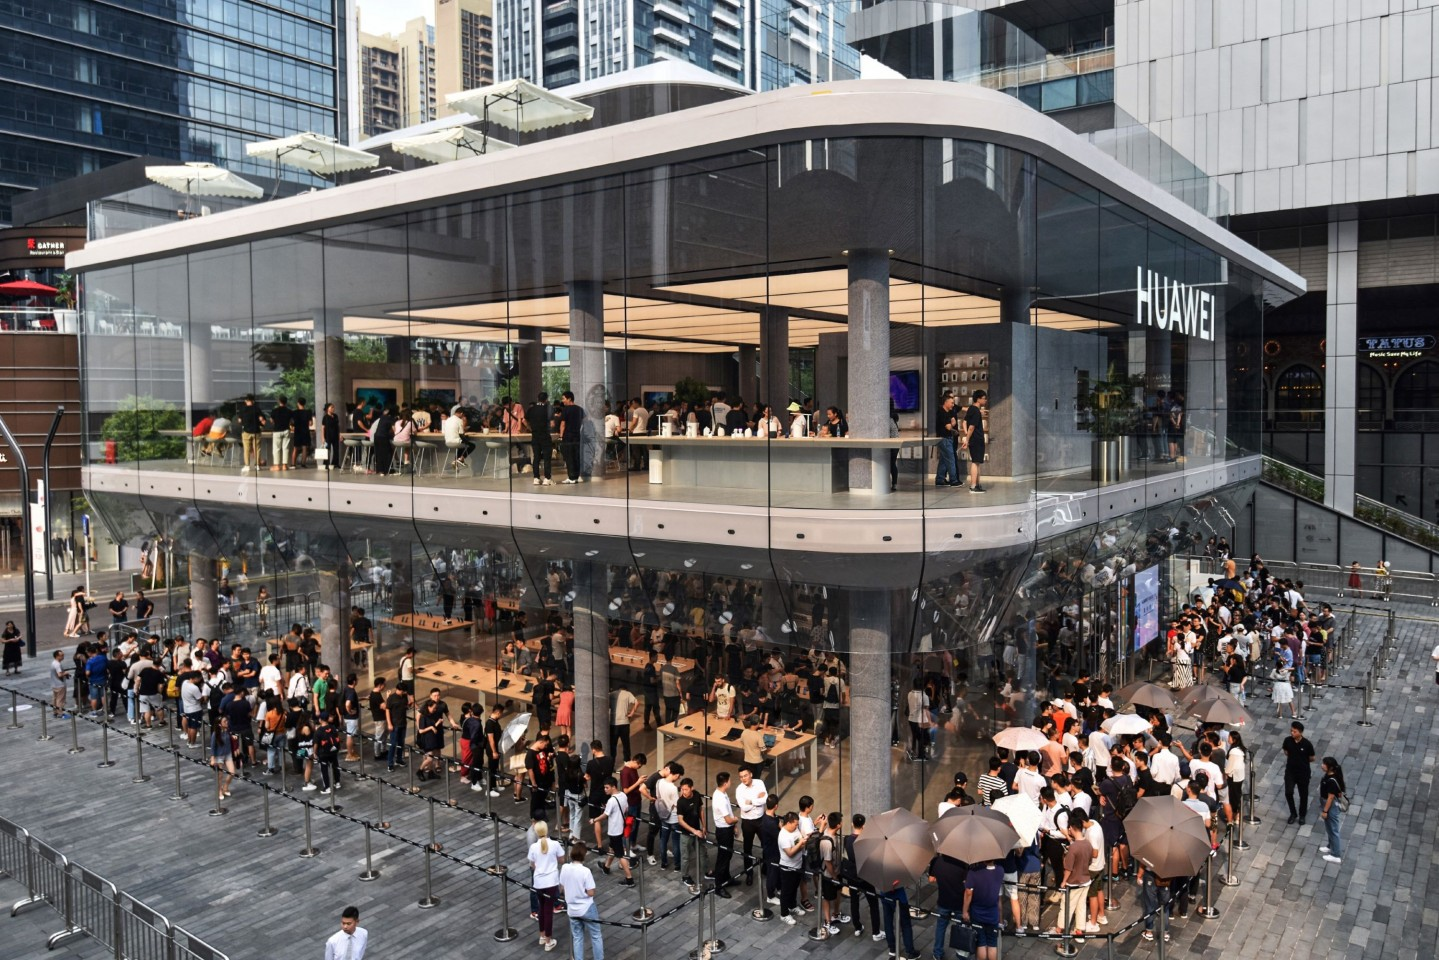 This photo taken on September 28, 2019 shows people queueing outside a newly-opened Huawei flagship store in Shenzhen in China's southern Guangdong province. (Photo by STR / AFP) / China OUT